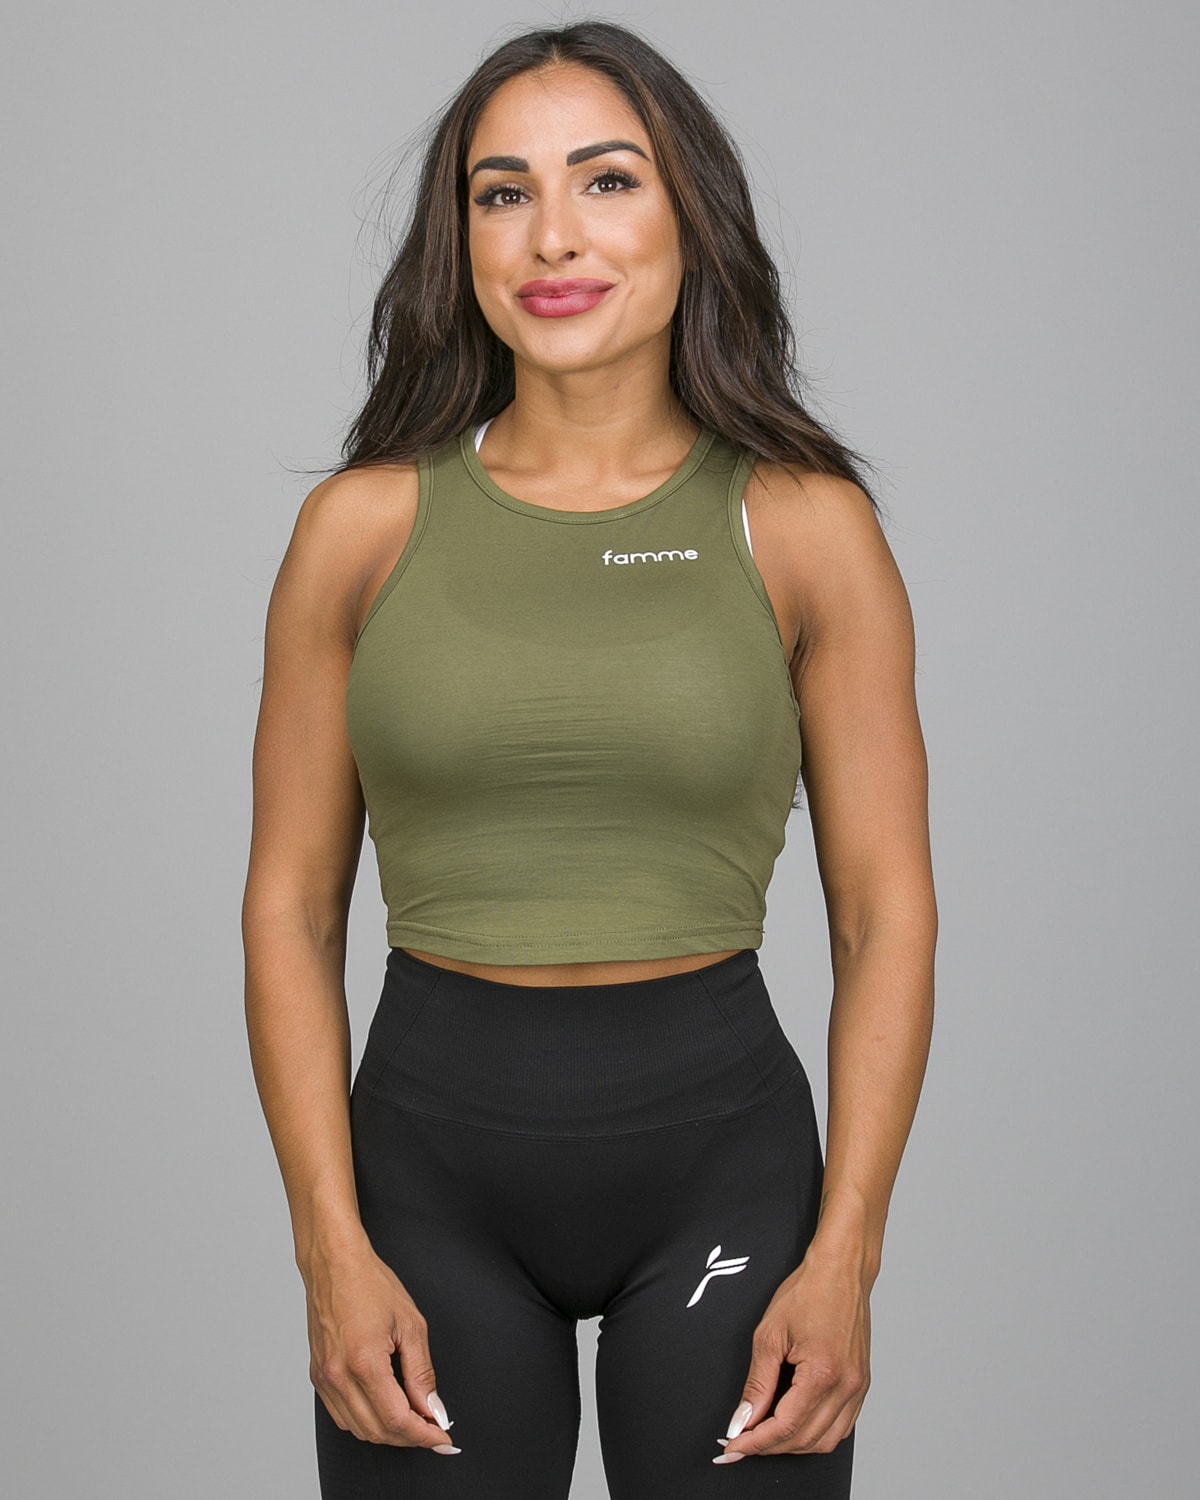 Famme Pure Crop Top Army Green PCT-AG